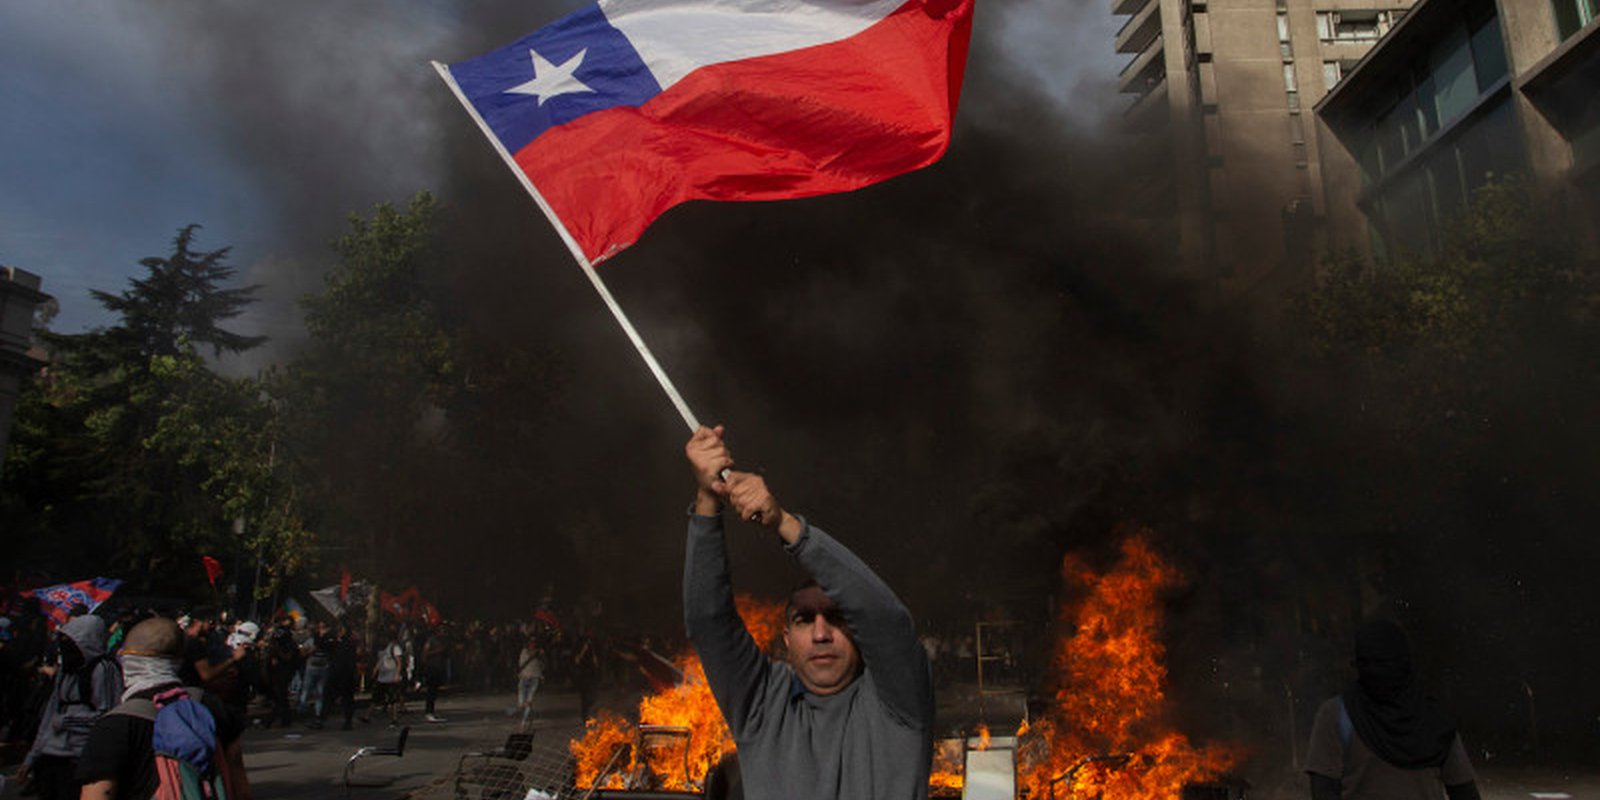 A demonstrator waves a Chilean flag at a barricade during a protest against the government's economic policies in Santiago on Oct. 29. CLAUDIO REYES/AFP VIA GETTY IMAGES